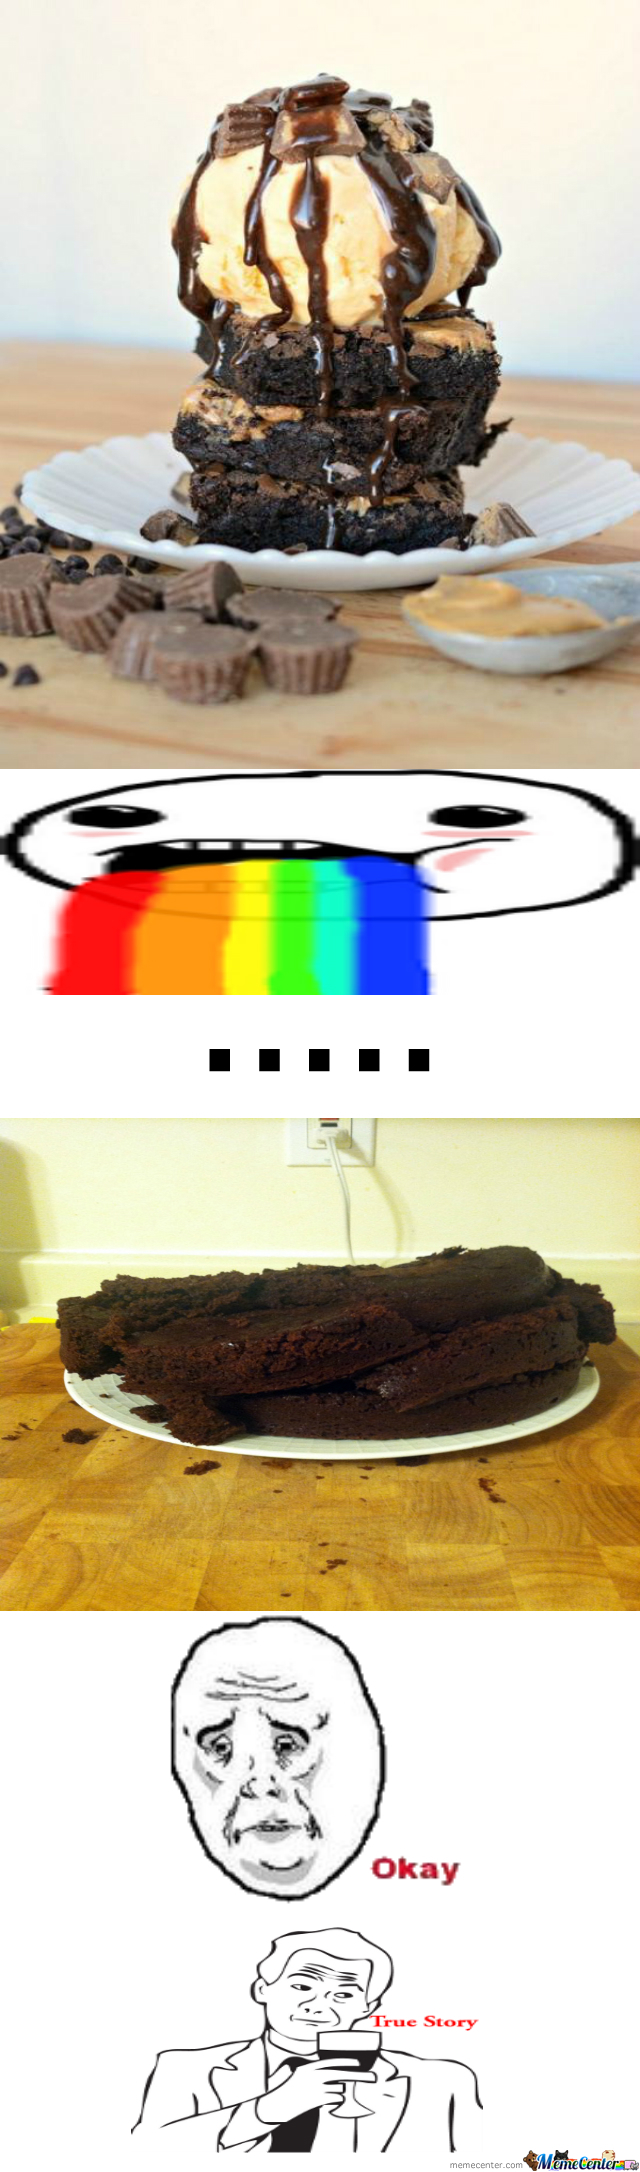 Chocolate Cake: Expectation Vs. Reality by amol.kulshrestha - Meme ...